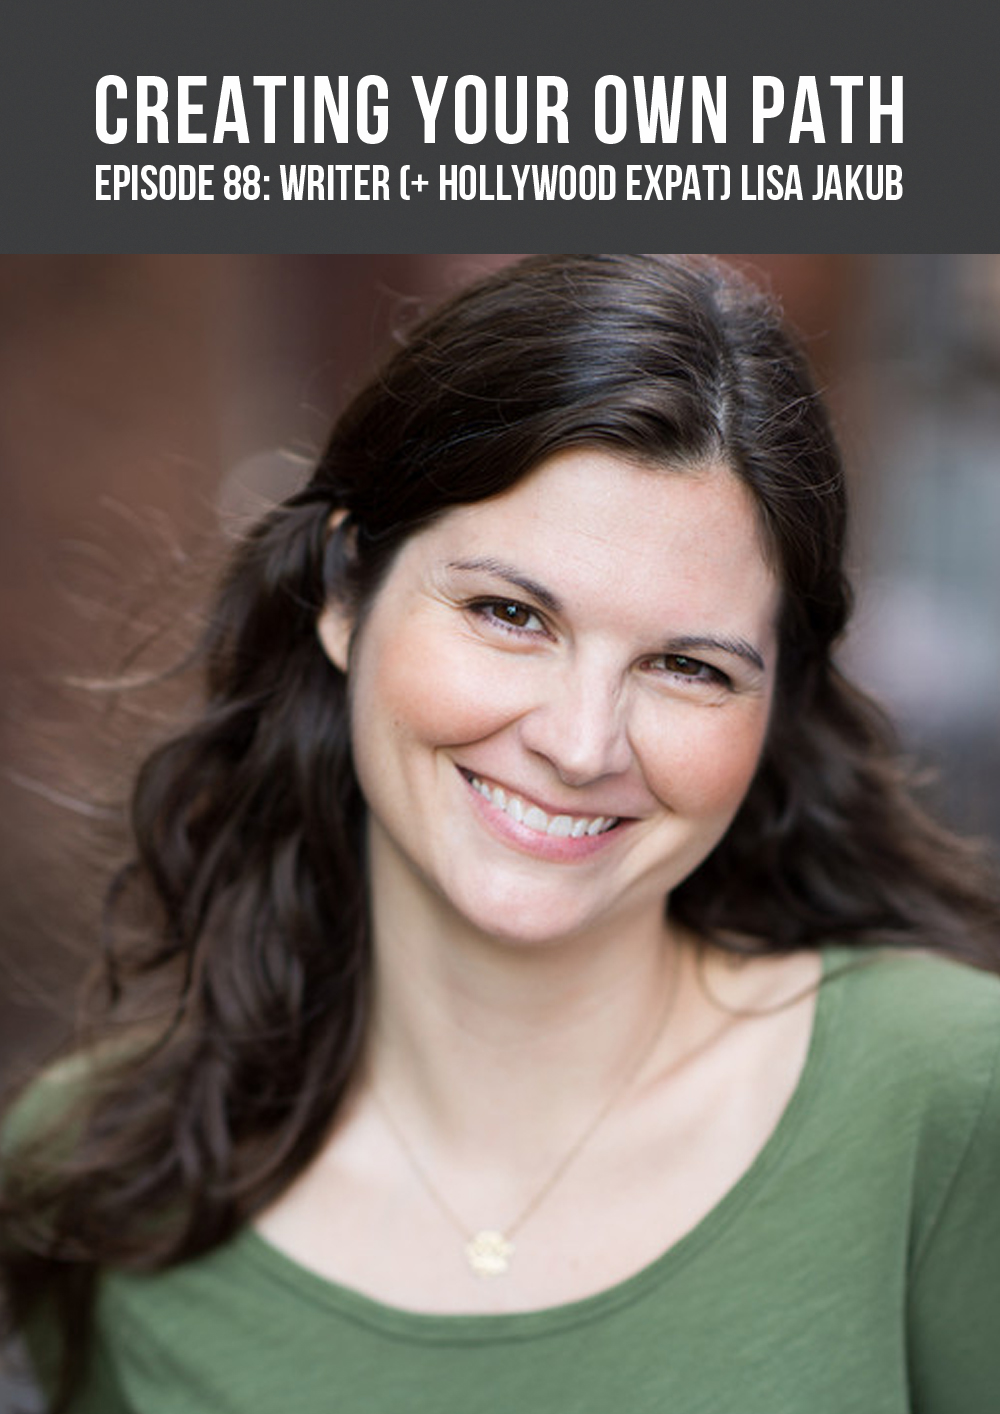 CYOP #88 - Author (+ Hollywood Expat) Lisa Jakub // creatingyourownpath.com